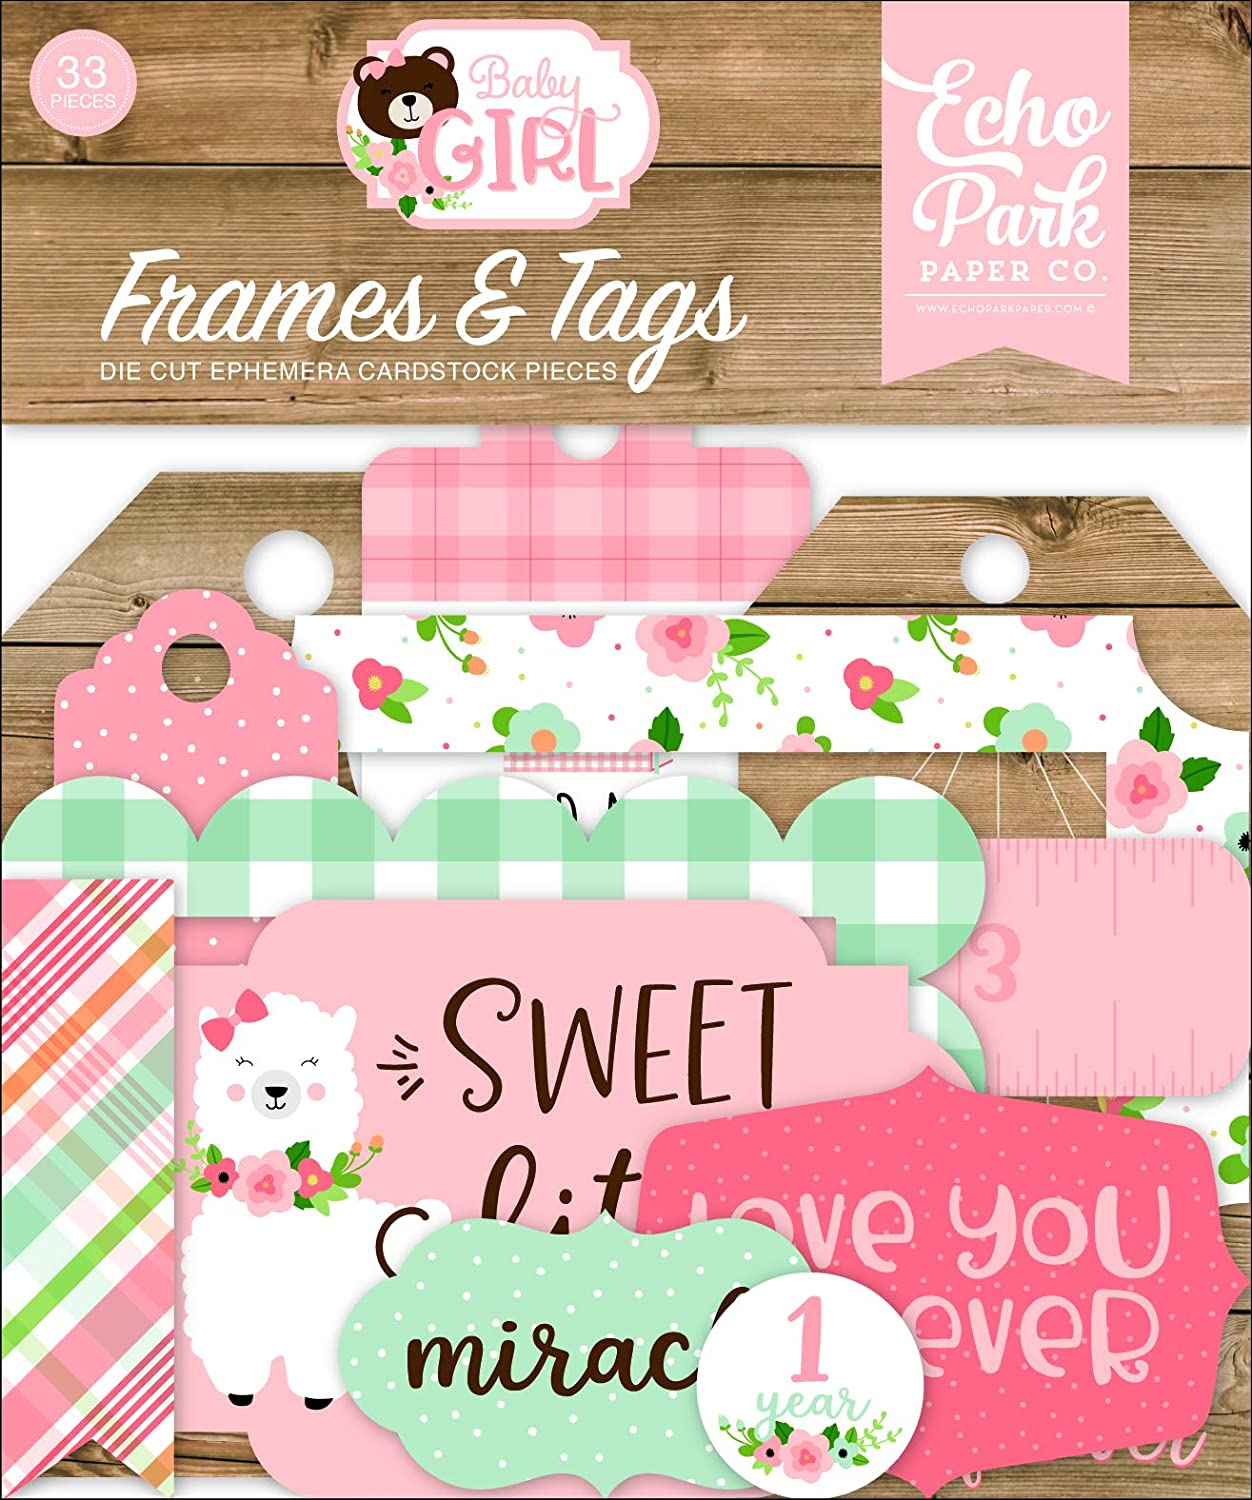 Echo Park Paper Company Baby Girl Frames & Tags ephemera, pink, yellow, green, blue